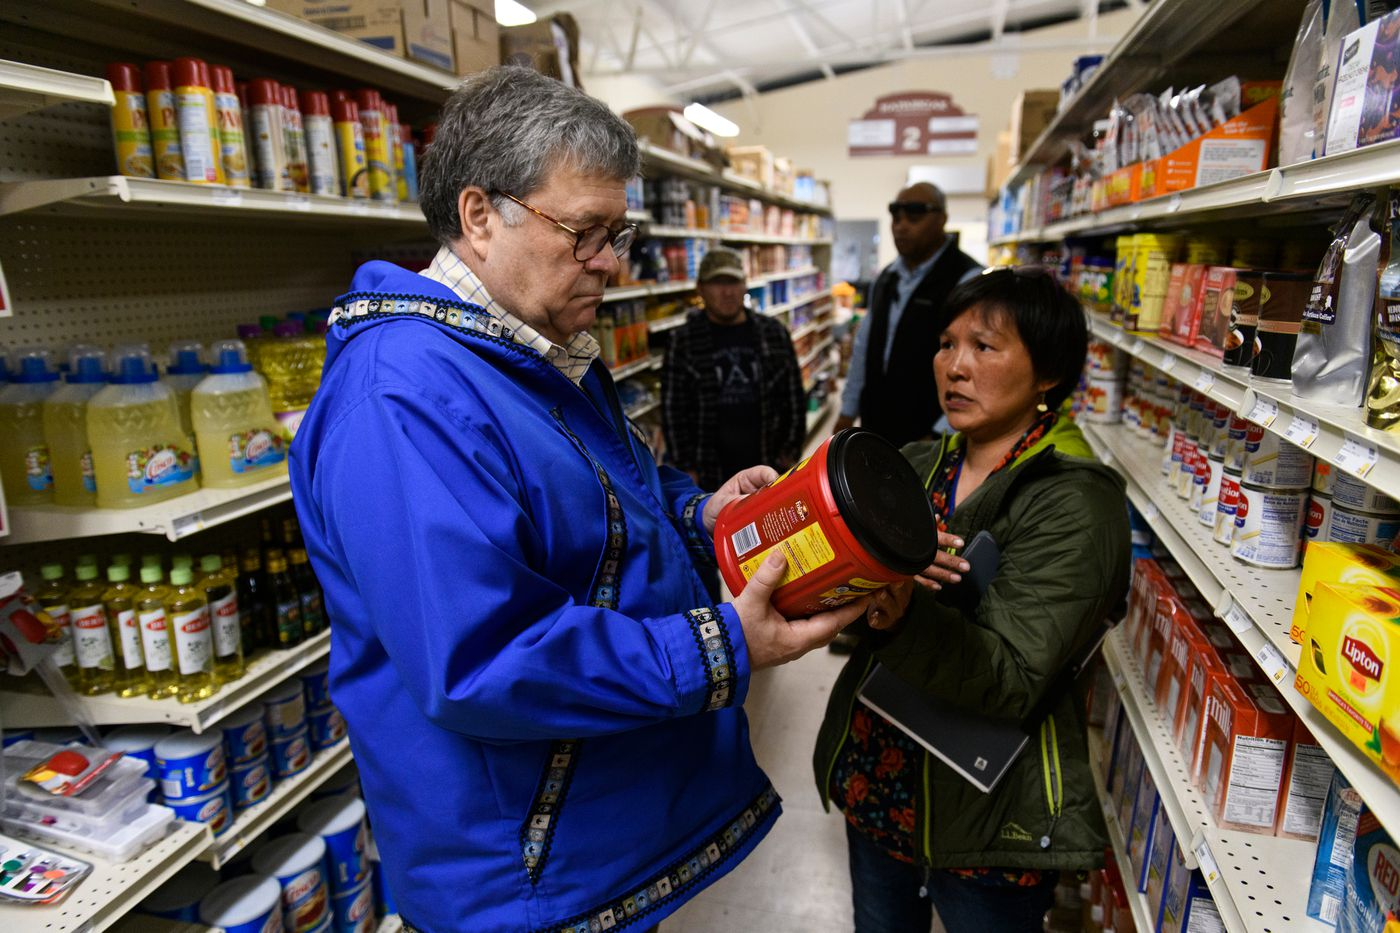 U.S. Attorney General William Barr talks about the cost of some grocery items with tribal administrator Sharon Williams during a visit to a store in Napaskiak on May 31, 2019. (Marc Lester / ADN)